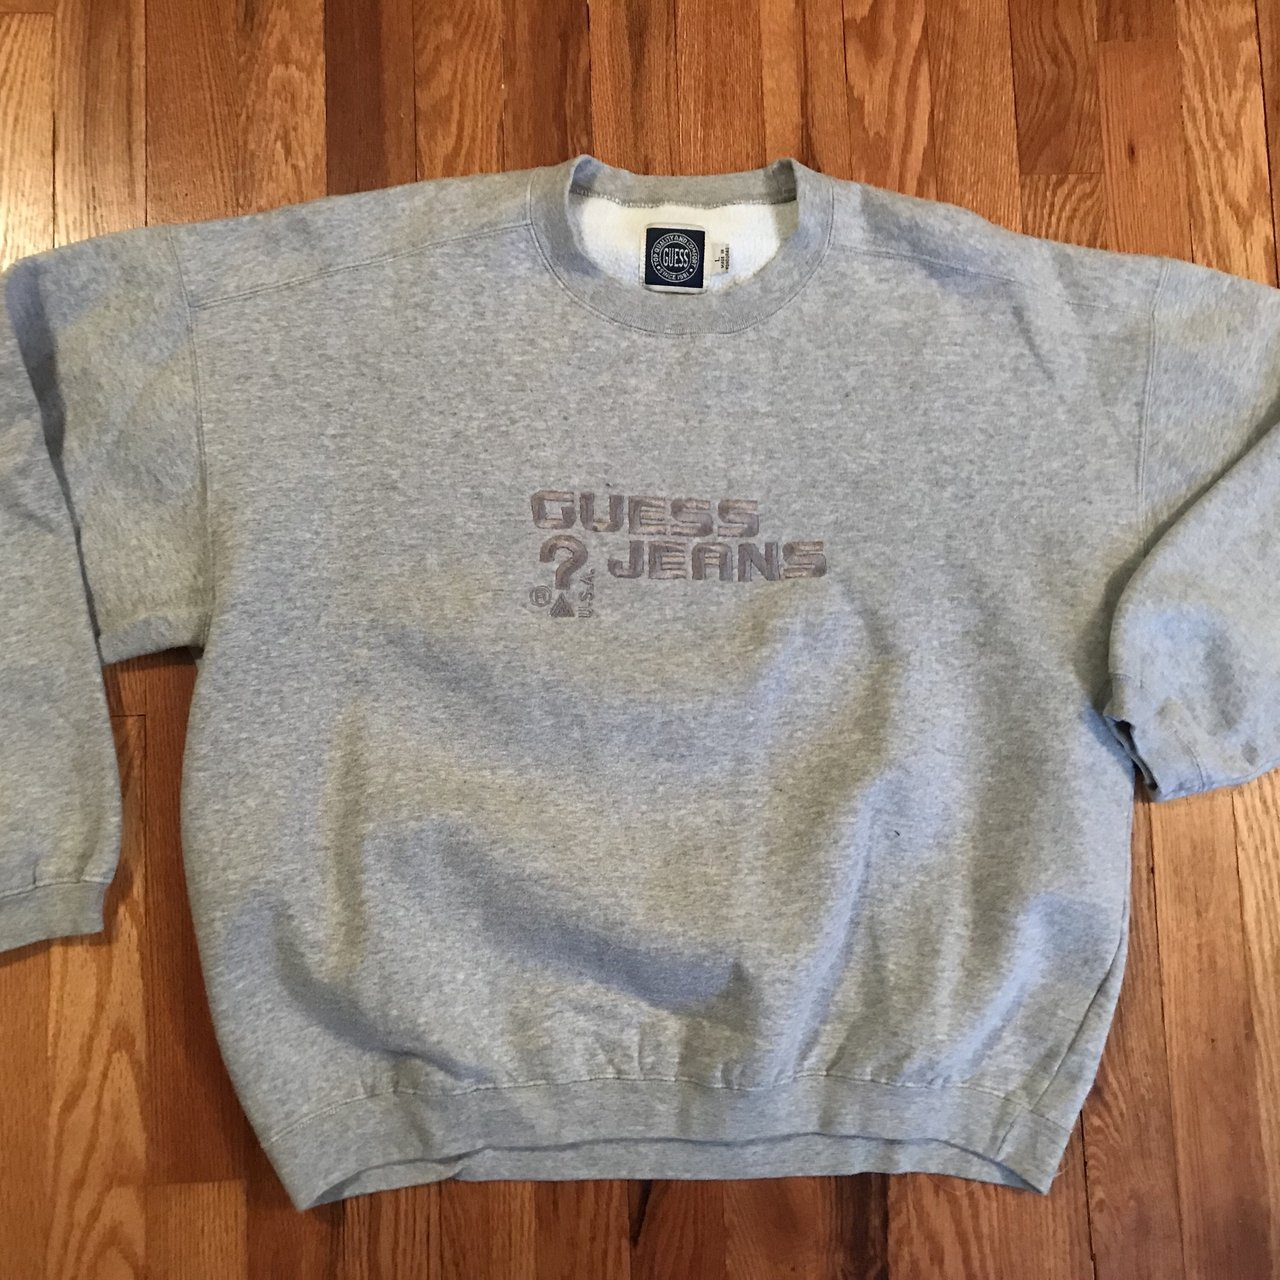 33e9ca043cc3 @vhshitfest. 16 days ago. Erie, United States. 90s Guess Jeans USA  embroidered crewneck sweatshirt sweater vintage hypebeast supreme  streetwear striped tee ...